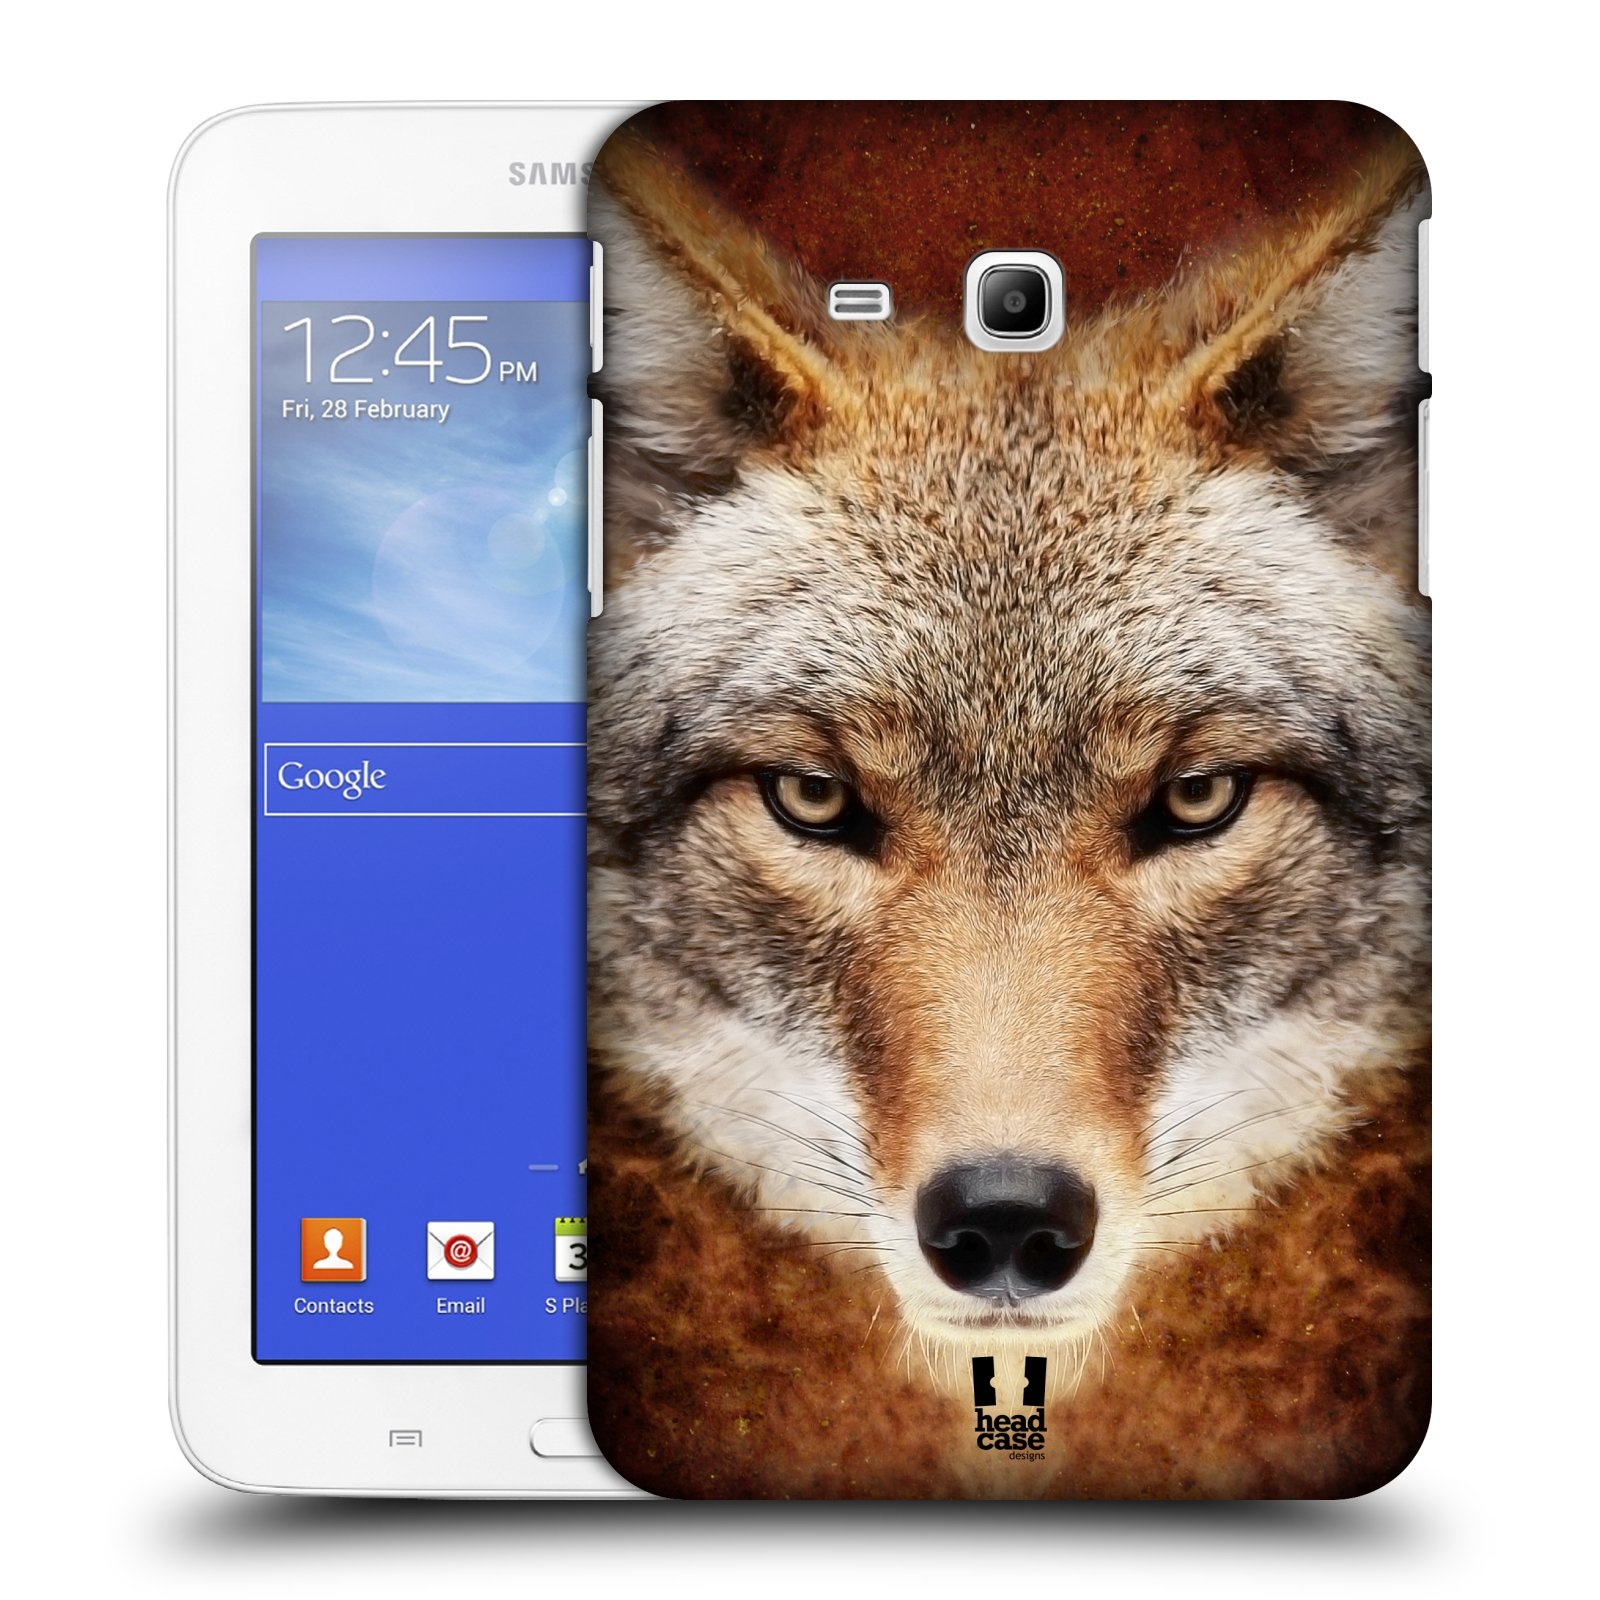 HEAD CASE DESIGNS ANIMAL FACES CASE COVER FOR SAMSUNG GALAXY TAB 3 LITE 7.0 T111